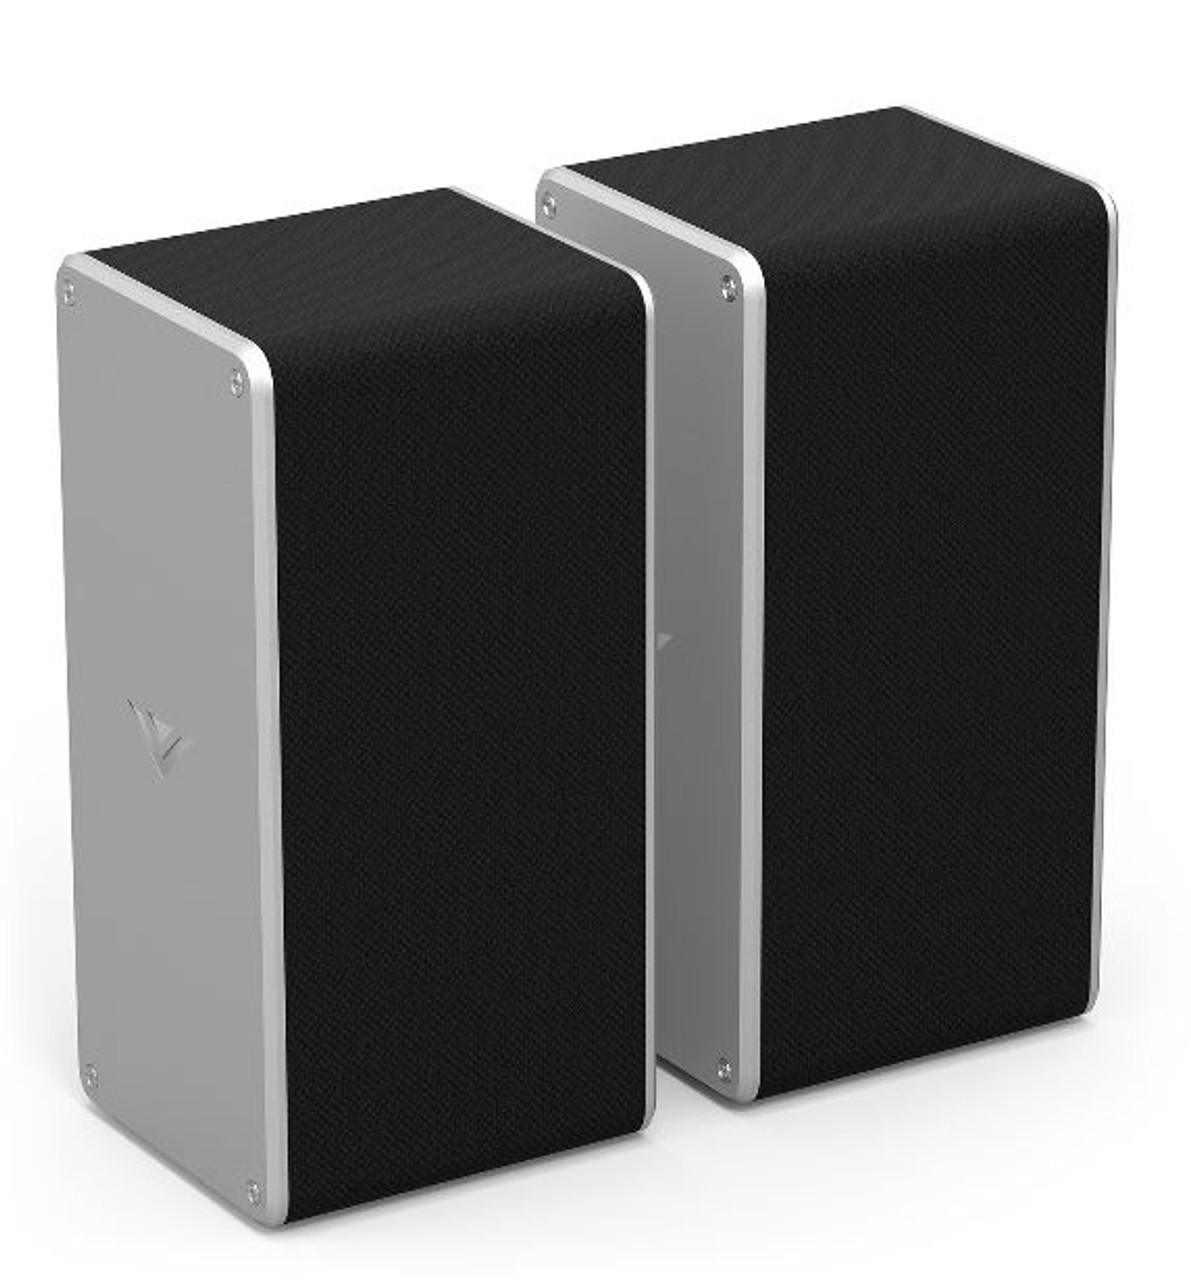 VIZIO SB36512-F6C-RB Dolby Atmos Home Theater Sound System- Certified Refurbished